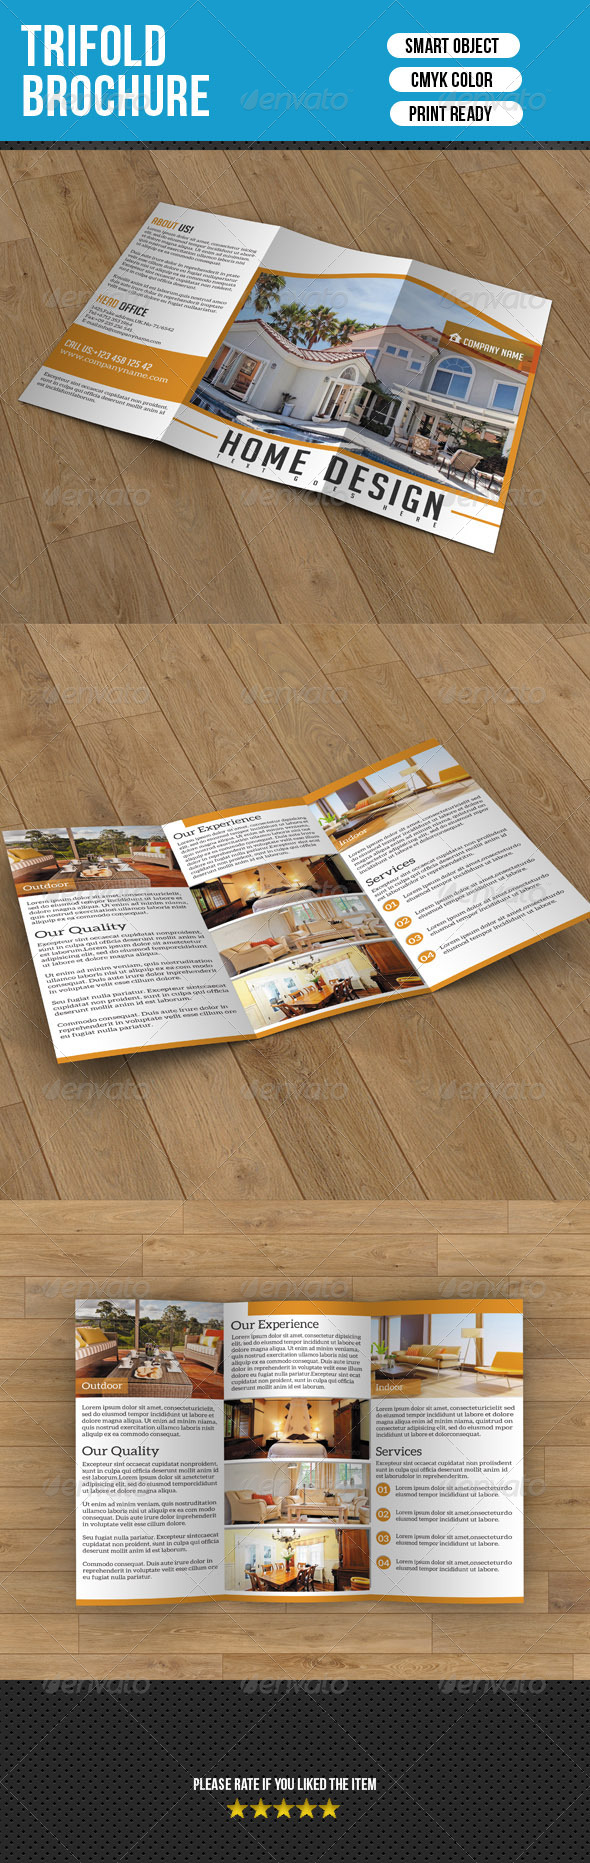 GraphicRiver Trifold Brochure-Real Estate Company 7216072